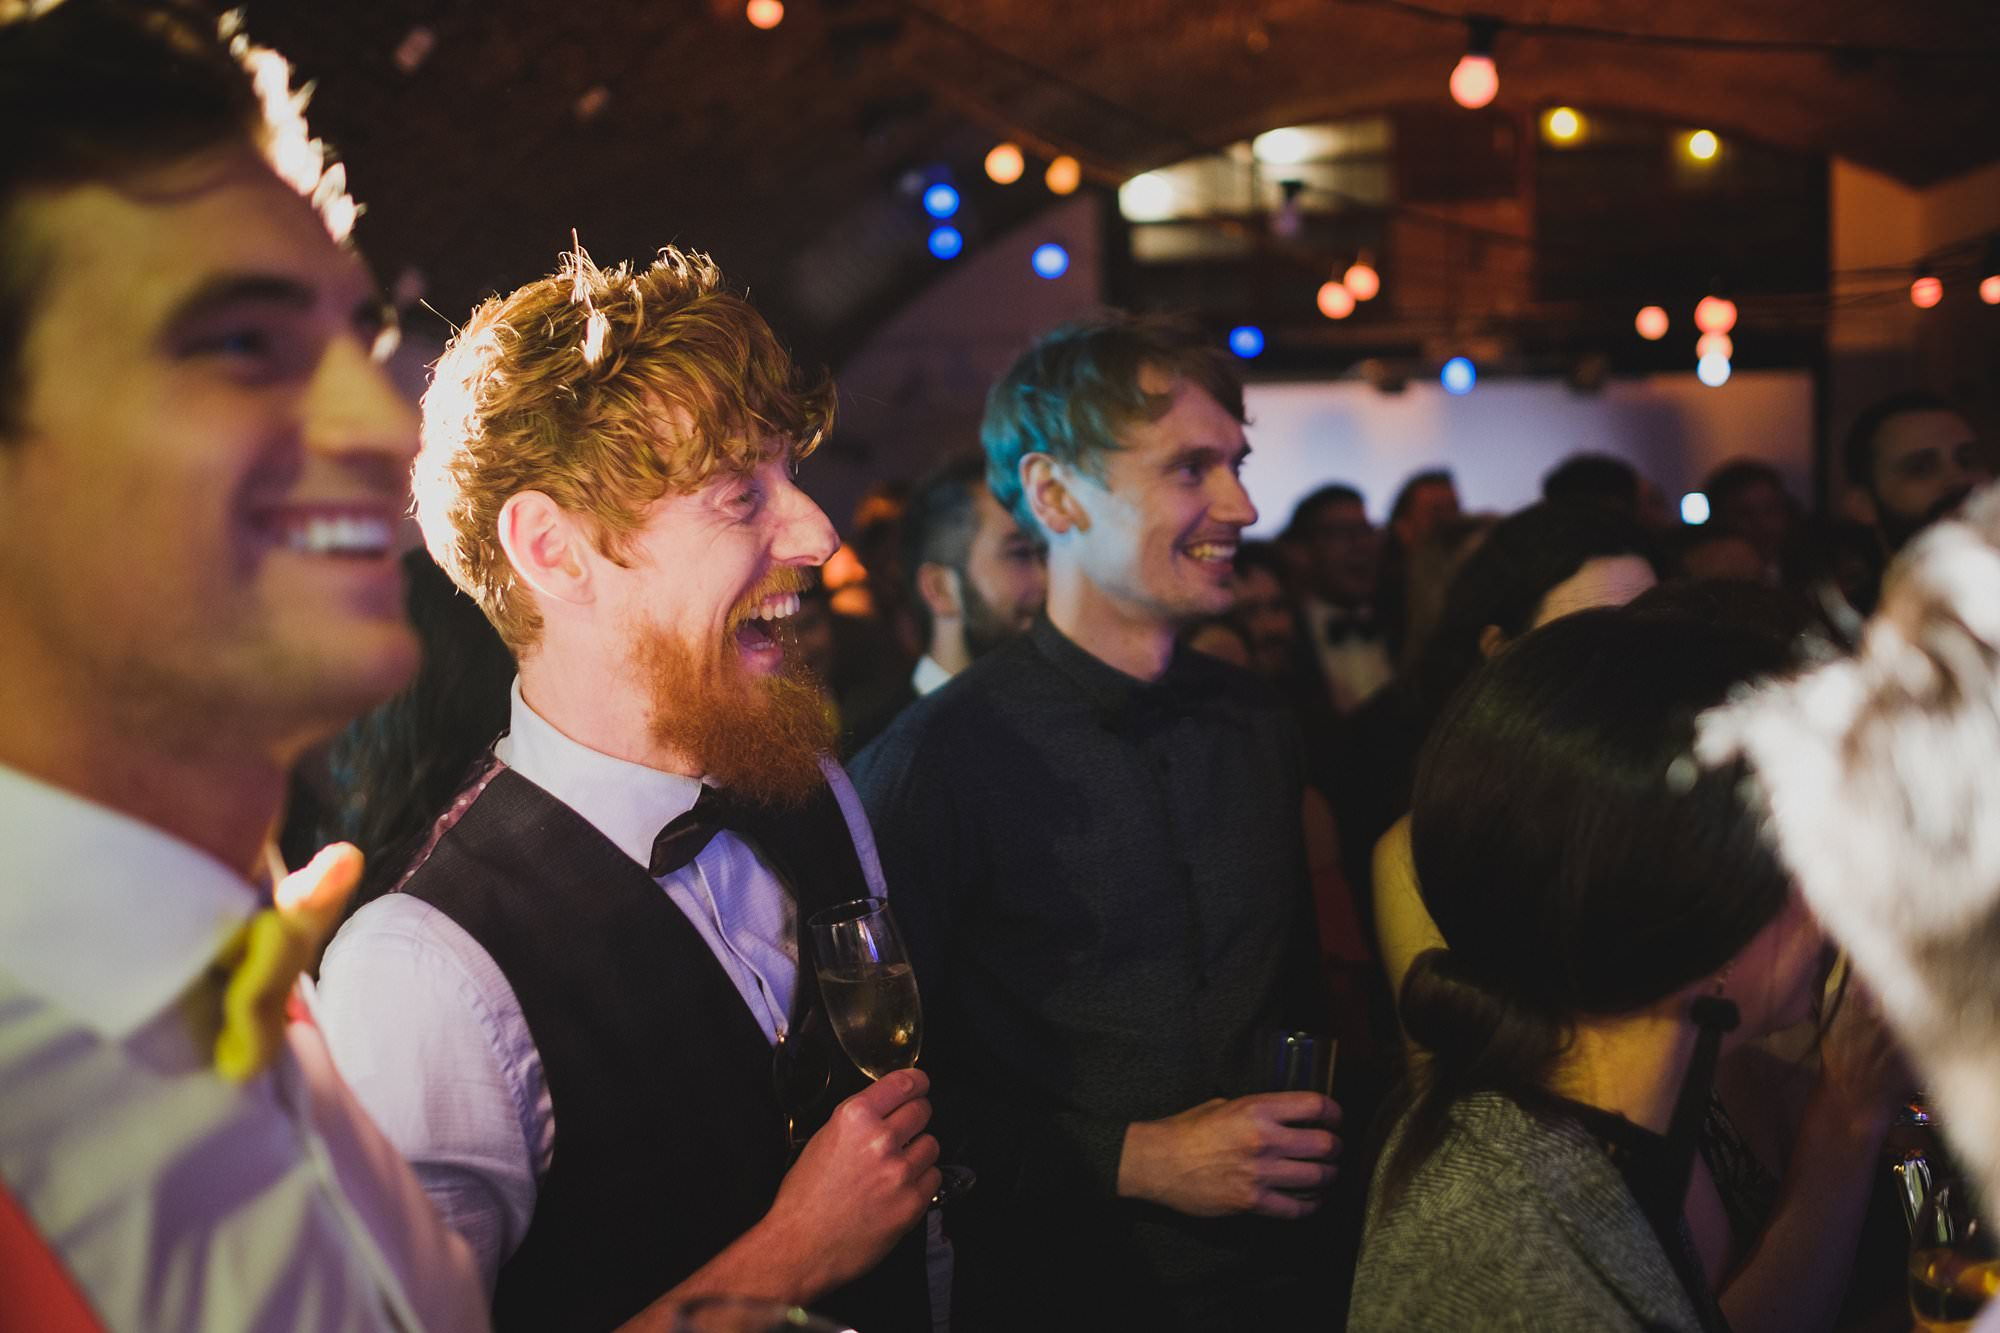 london party photographer hoxton arches 023 - An Elopement Reception at Hoxton Arches